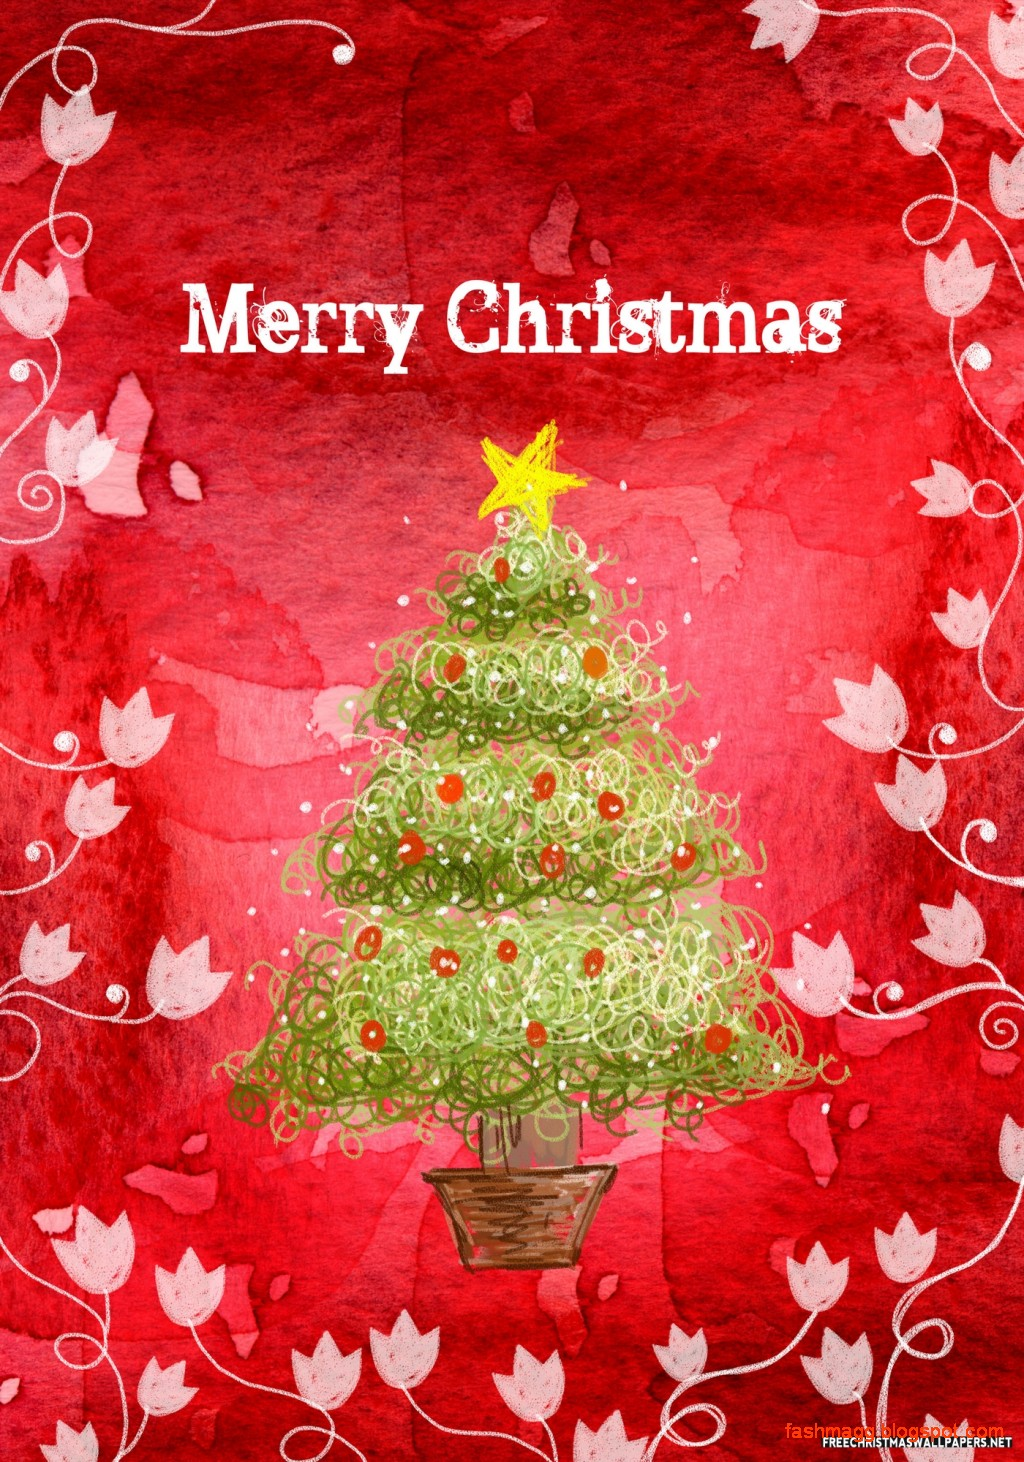 Merry Christmas X-Mass Greeting Cards Pictures-Christmas Cards Ideas-Gifts-Images-Photos11